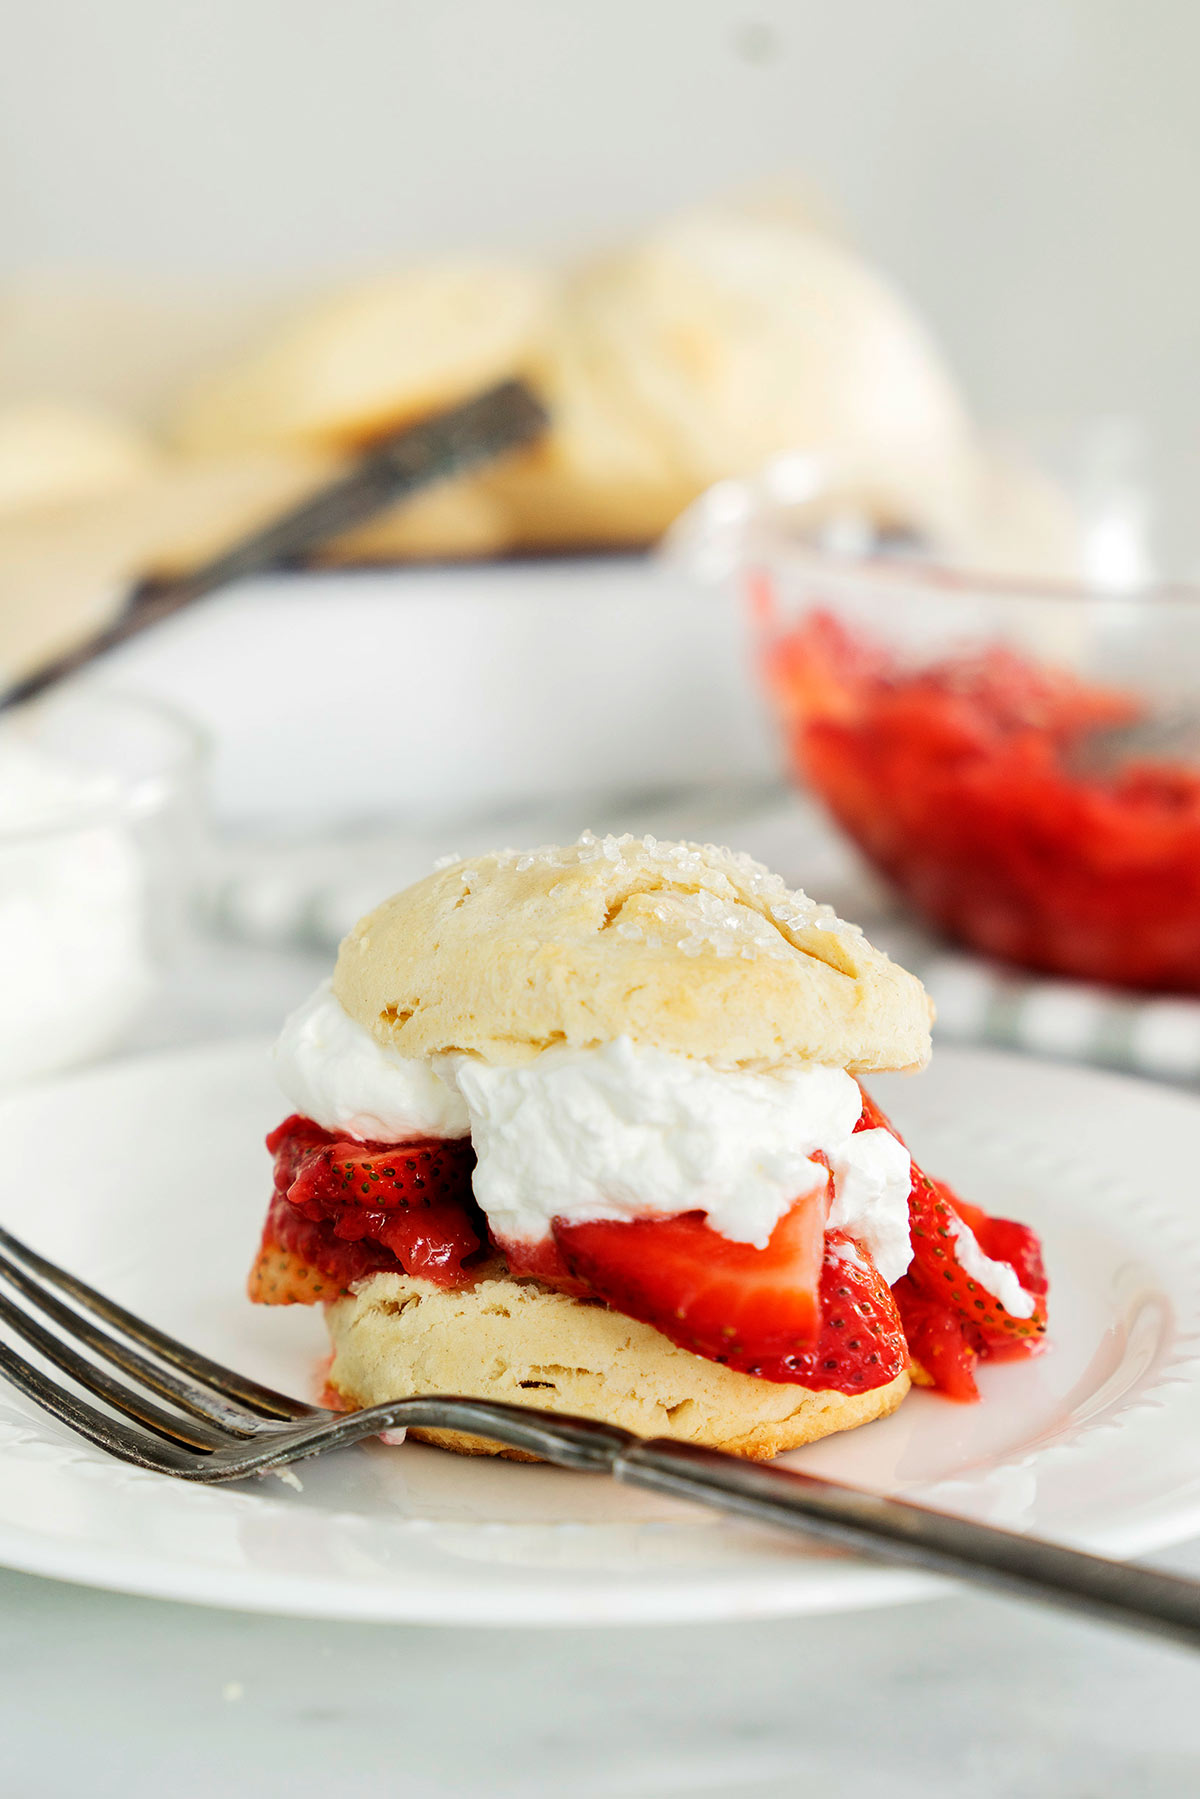 a white plate with a classic strawberry shortcake made with macerated strawberries, sweet whipped cream and biscuits